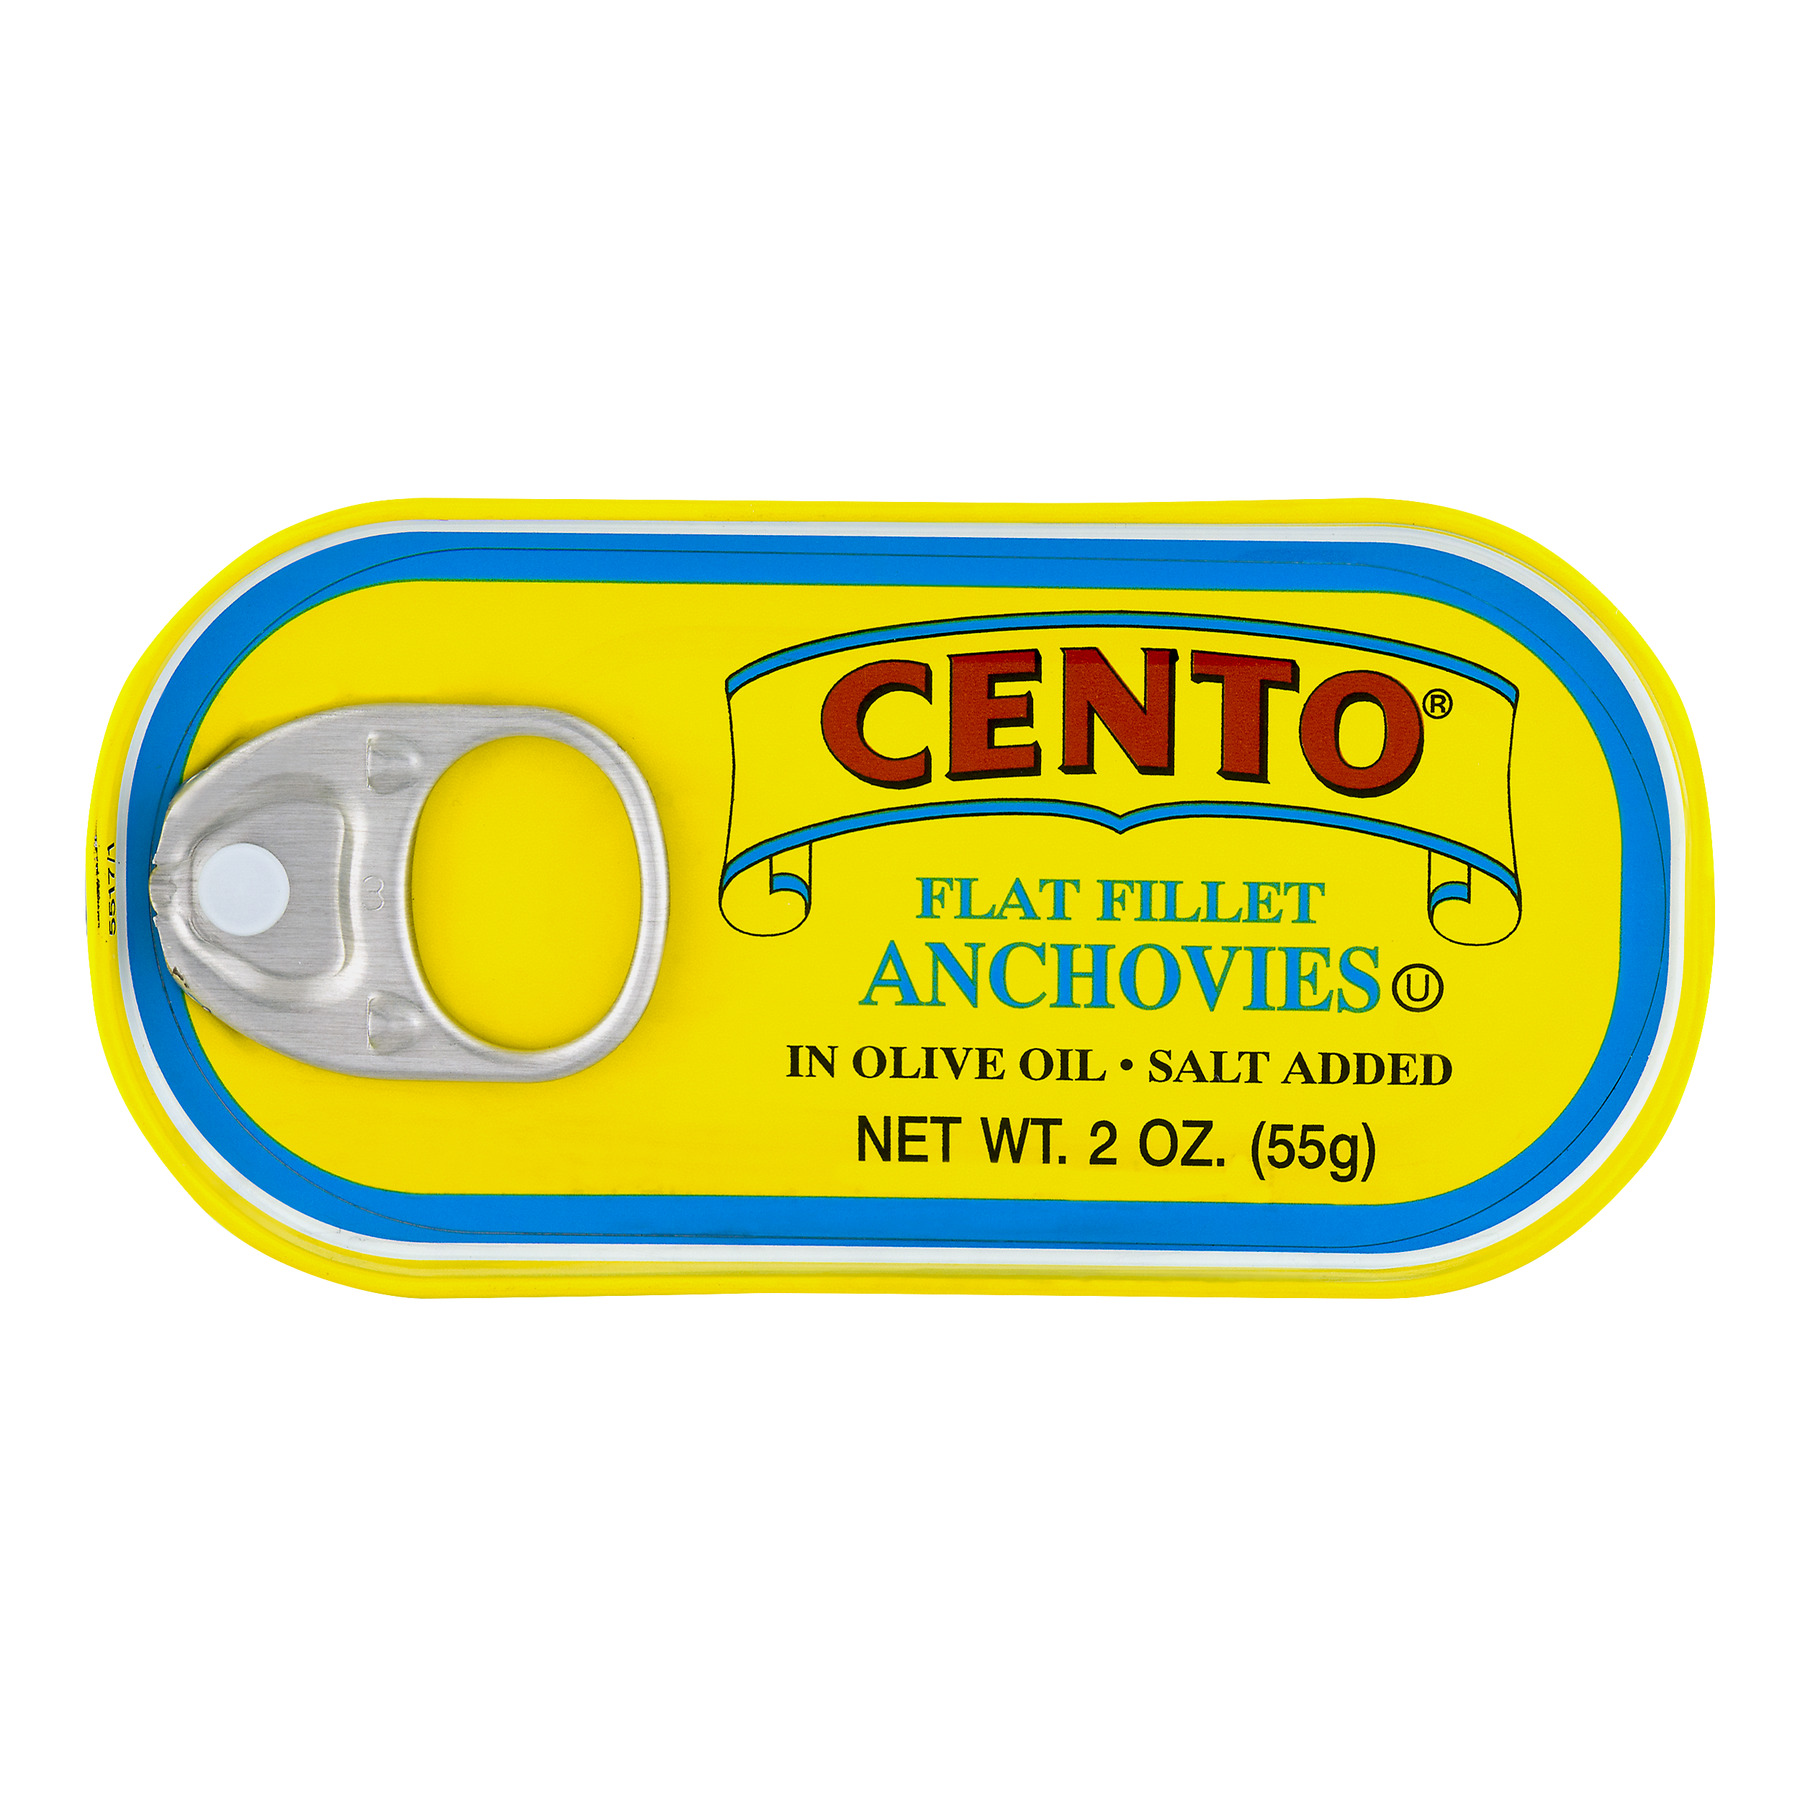 Cento Flat Fillet Anchovies in Olive Oil, 2.0 OZ